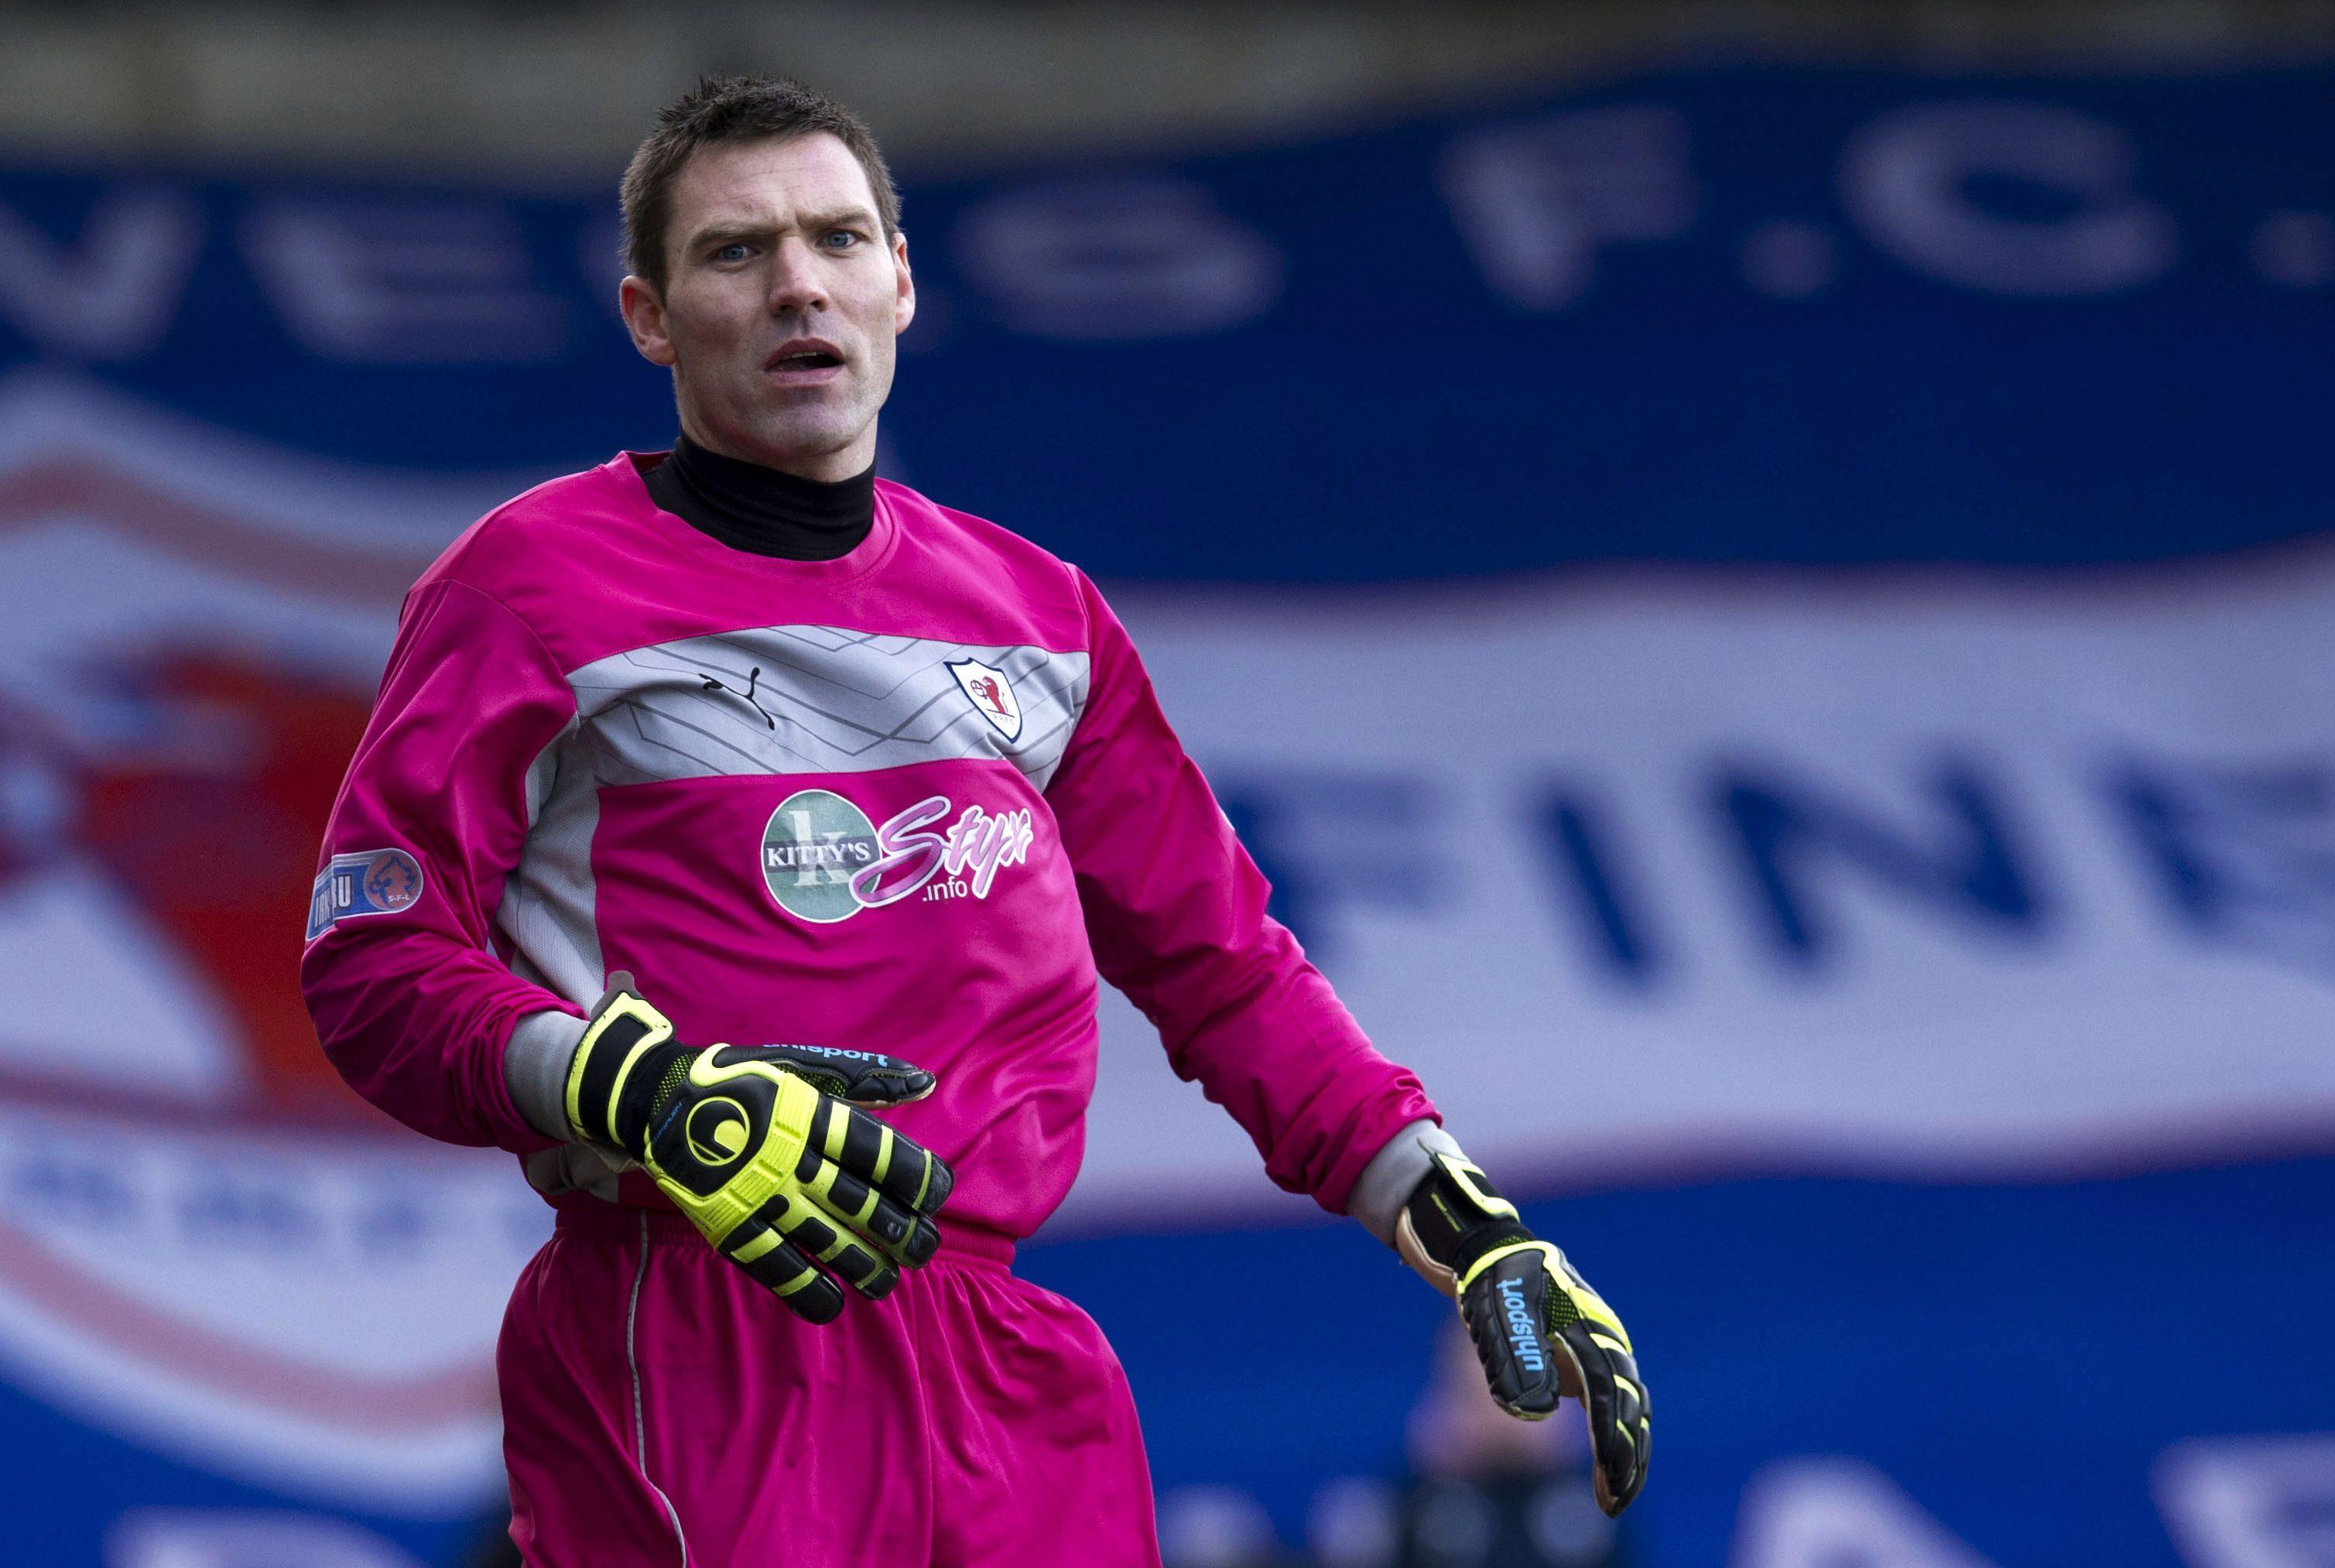 David McGurn in action for Raith Rovers.